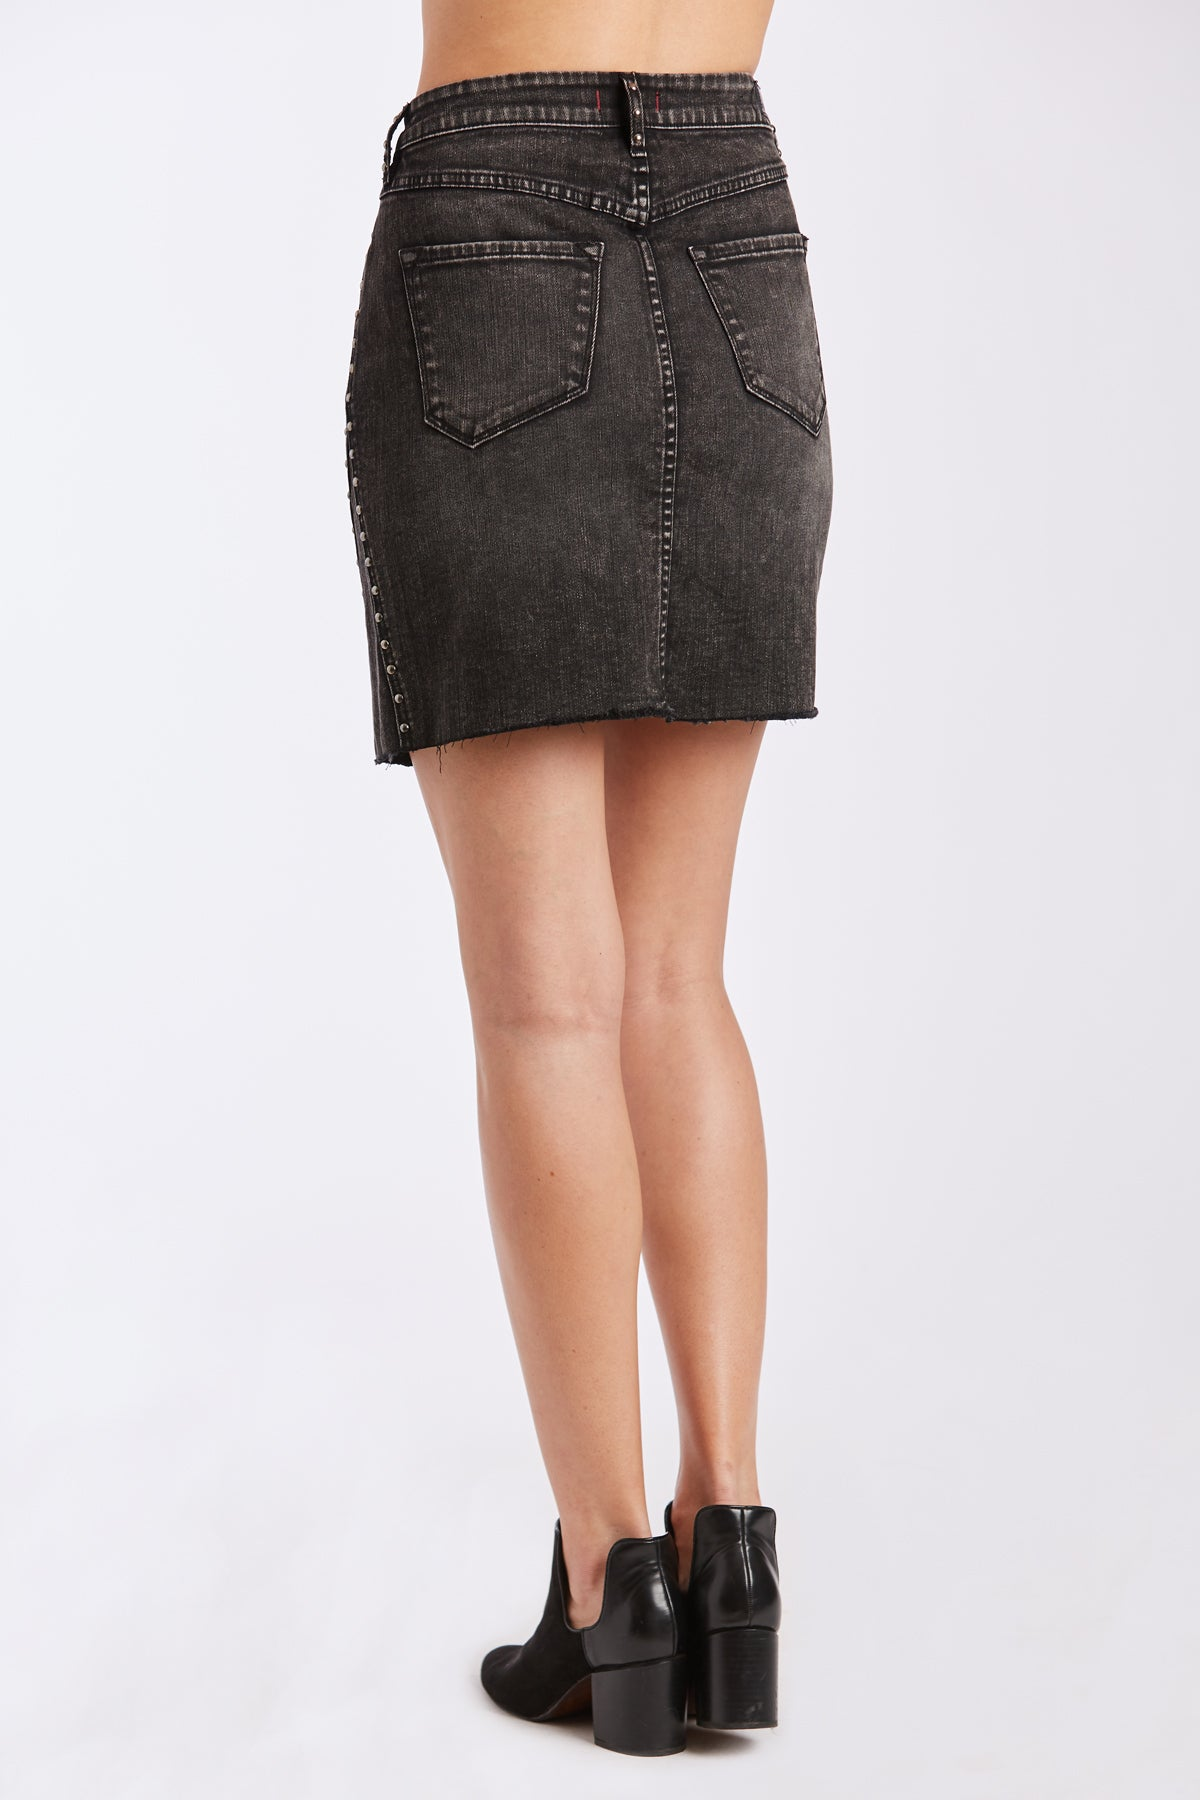 KAYLEE HIGH RISE ALINE SKIRT